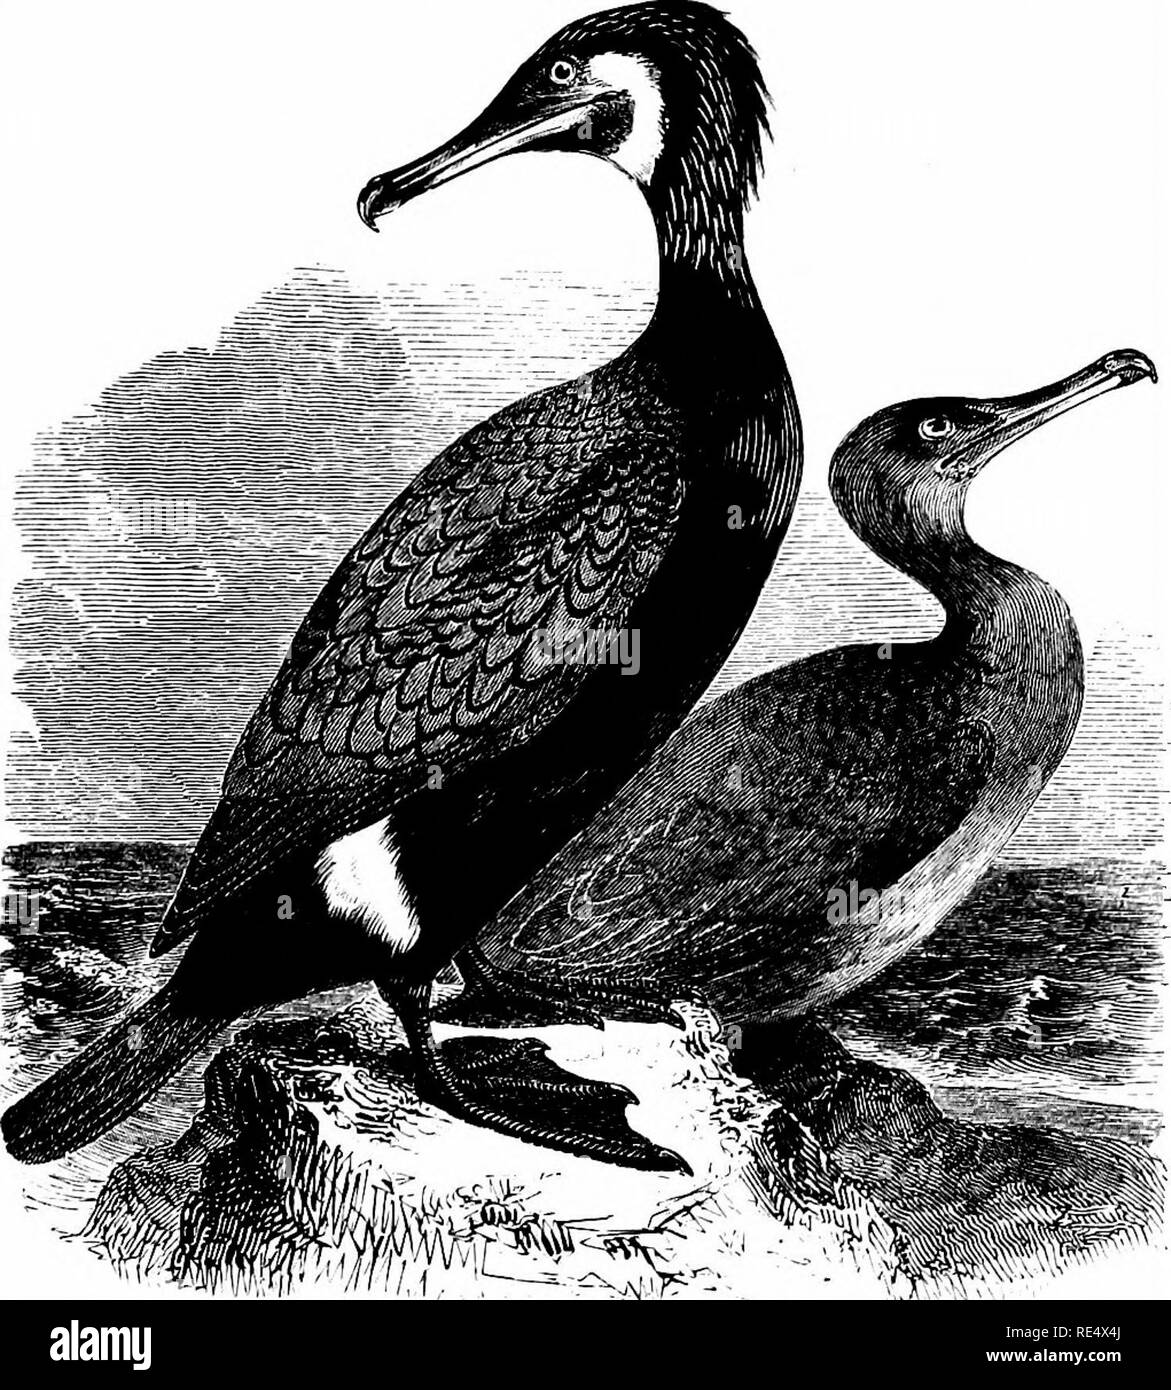 . An illustrated manual of British birds. Birds. PELECANID^. 361. THE COMMON CORMORANT. Phalacr6corax cArbo (Linnsus). The Great, or Black Cormorant, as it is sometimes called to distinguish it from the smaller Green Cormorant or Shag, is common and generally distributed along the greater part of the British coast-hne, and until 1825-27 some 50 or 60 pairs used to nest on the trees at Fritton, Suffolk. From Flamborough northward to Caithness it is more abundant, as a rule, than the Shag; though in the Shetlands, Orkneys, Hebrides, and along the western side of Scotland, it is usually in a mino - Stock Image